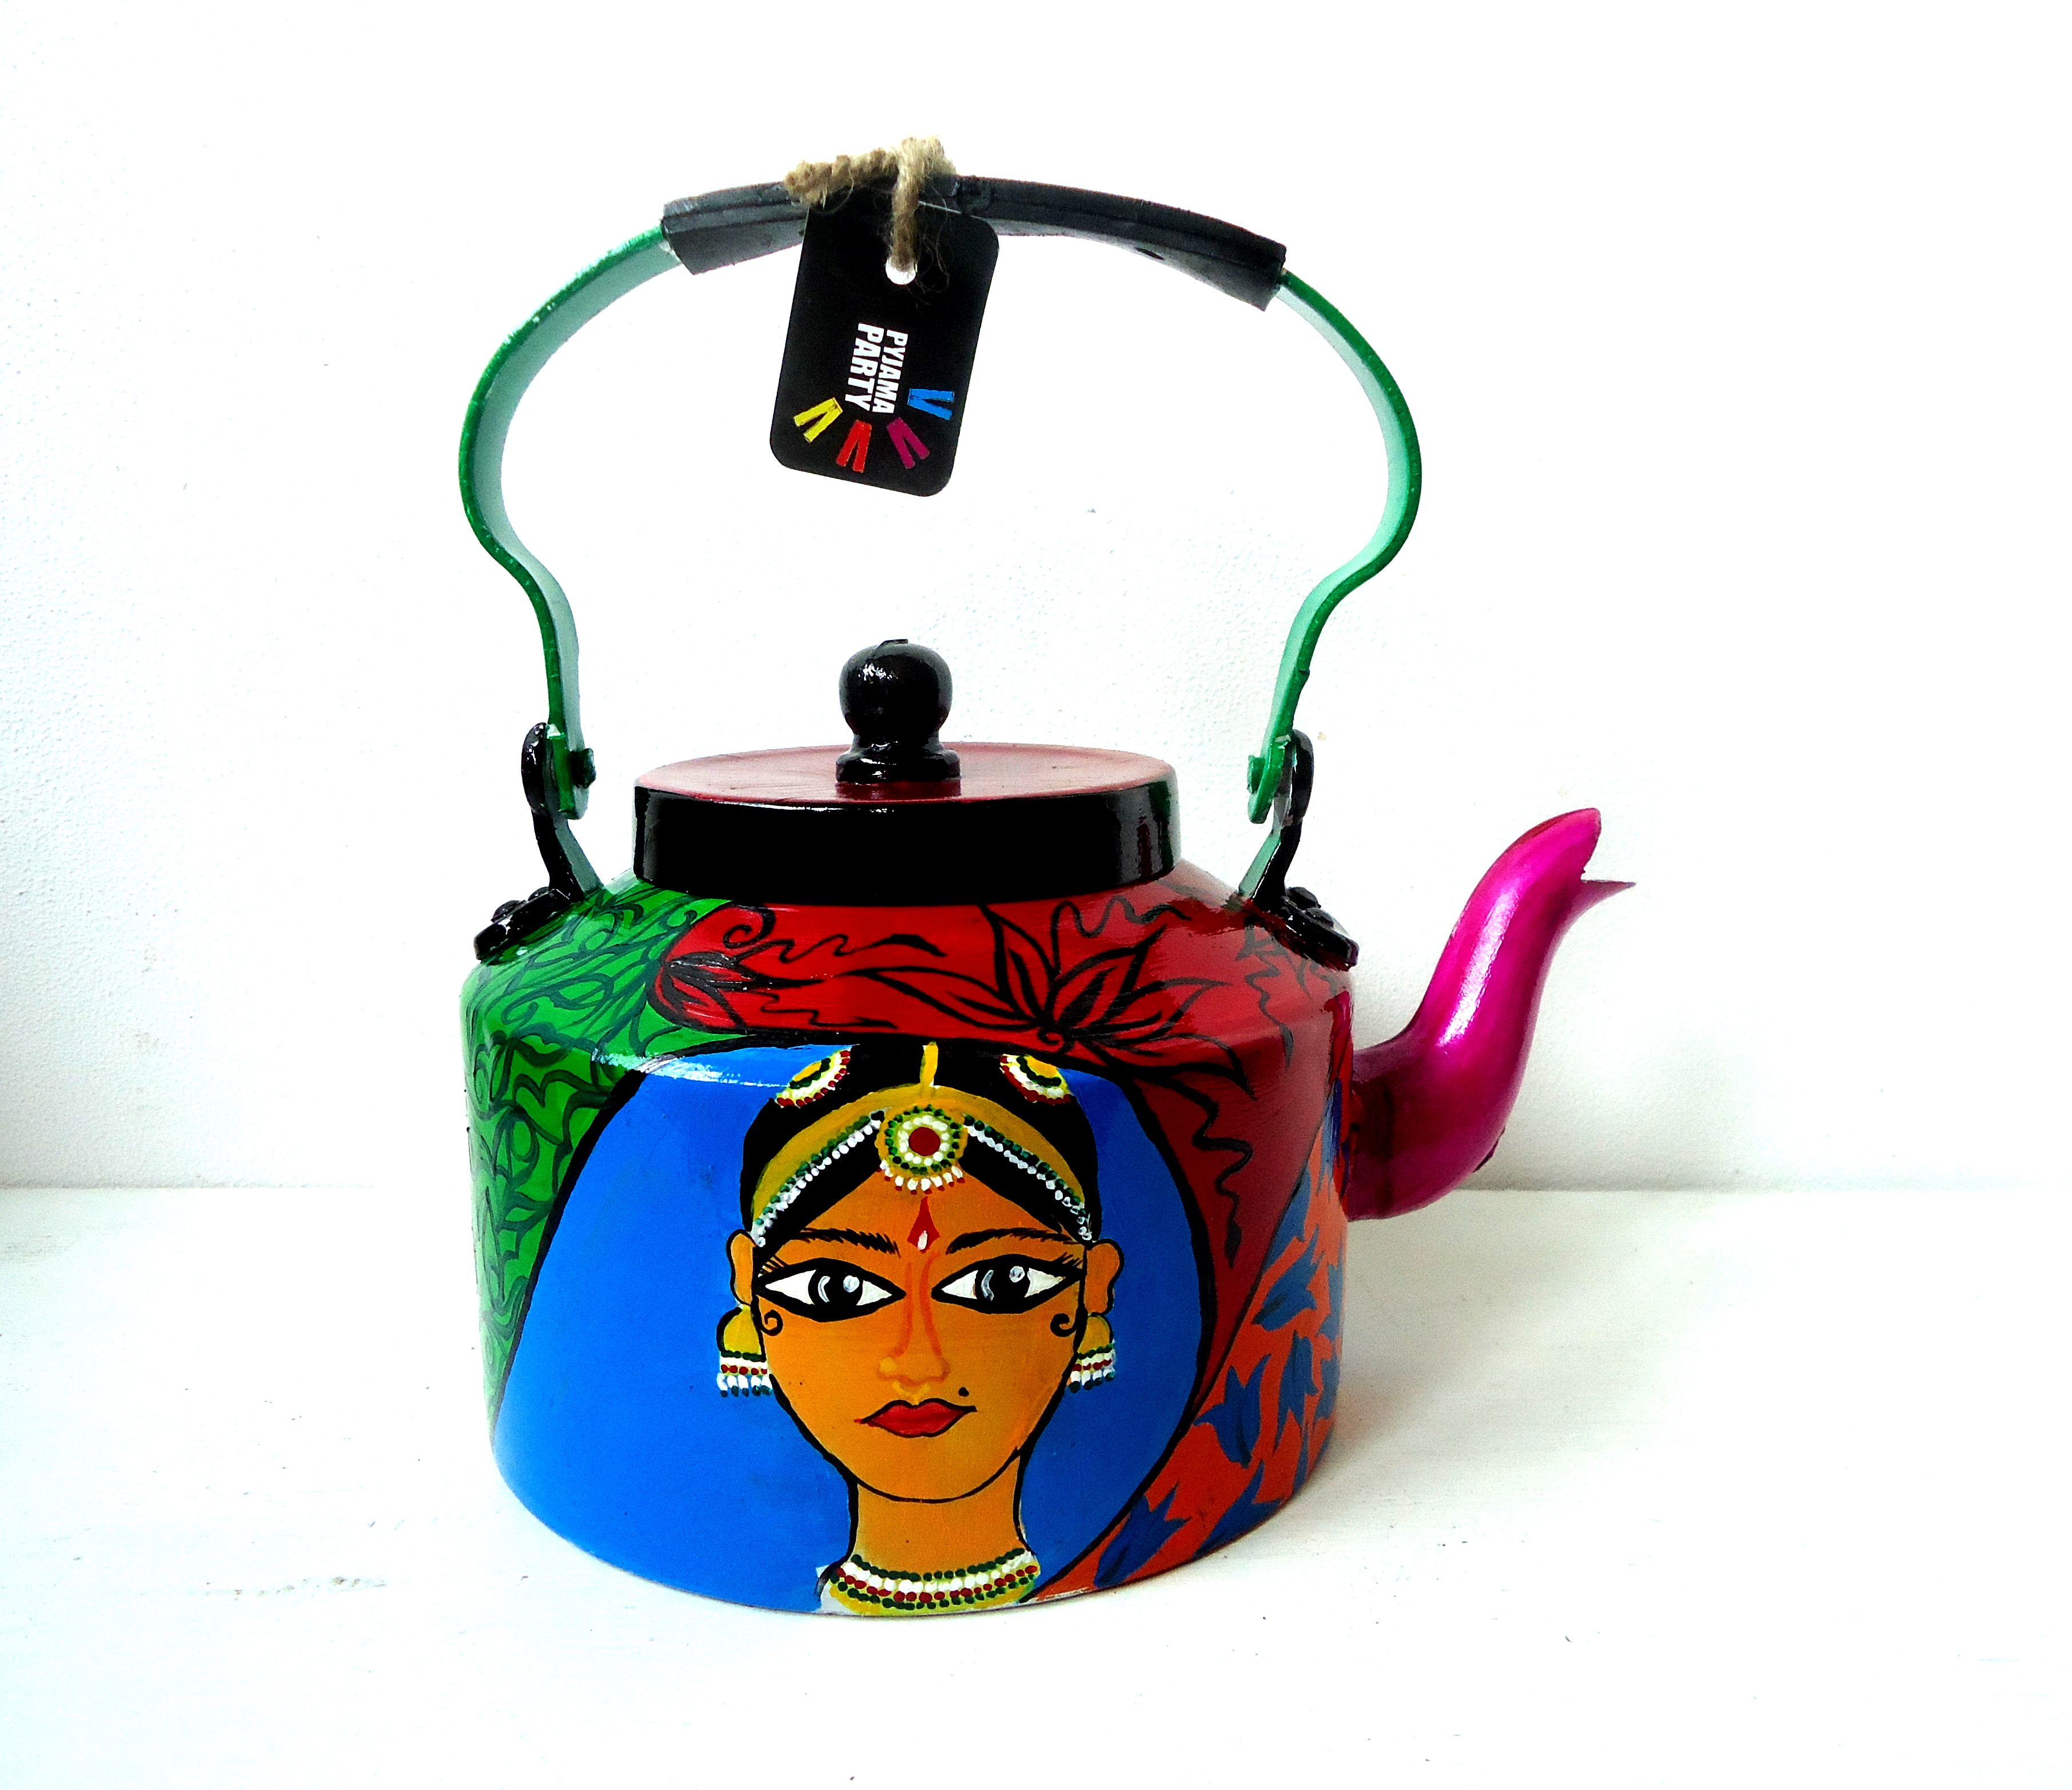 hand painted aluminium kettle  indybindi  pinterest  kettle  - indian dancer handpainted tea kettle why did i pin this because i'mseriously thinking of hand painting a teakettle to go with my decoreither black